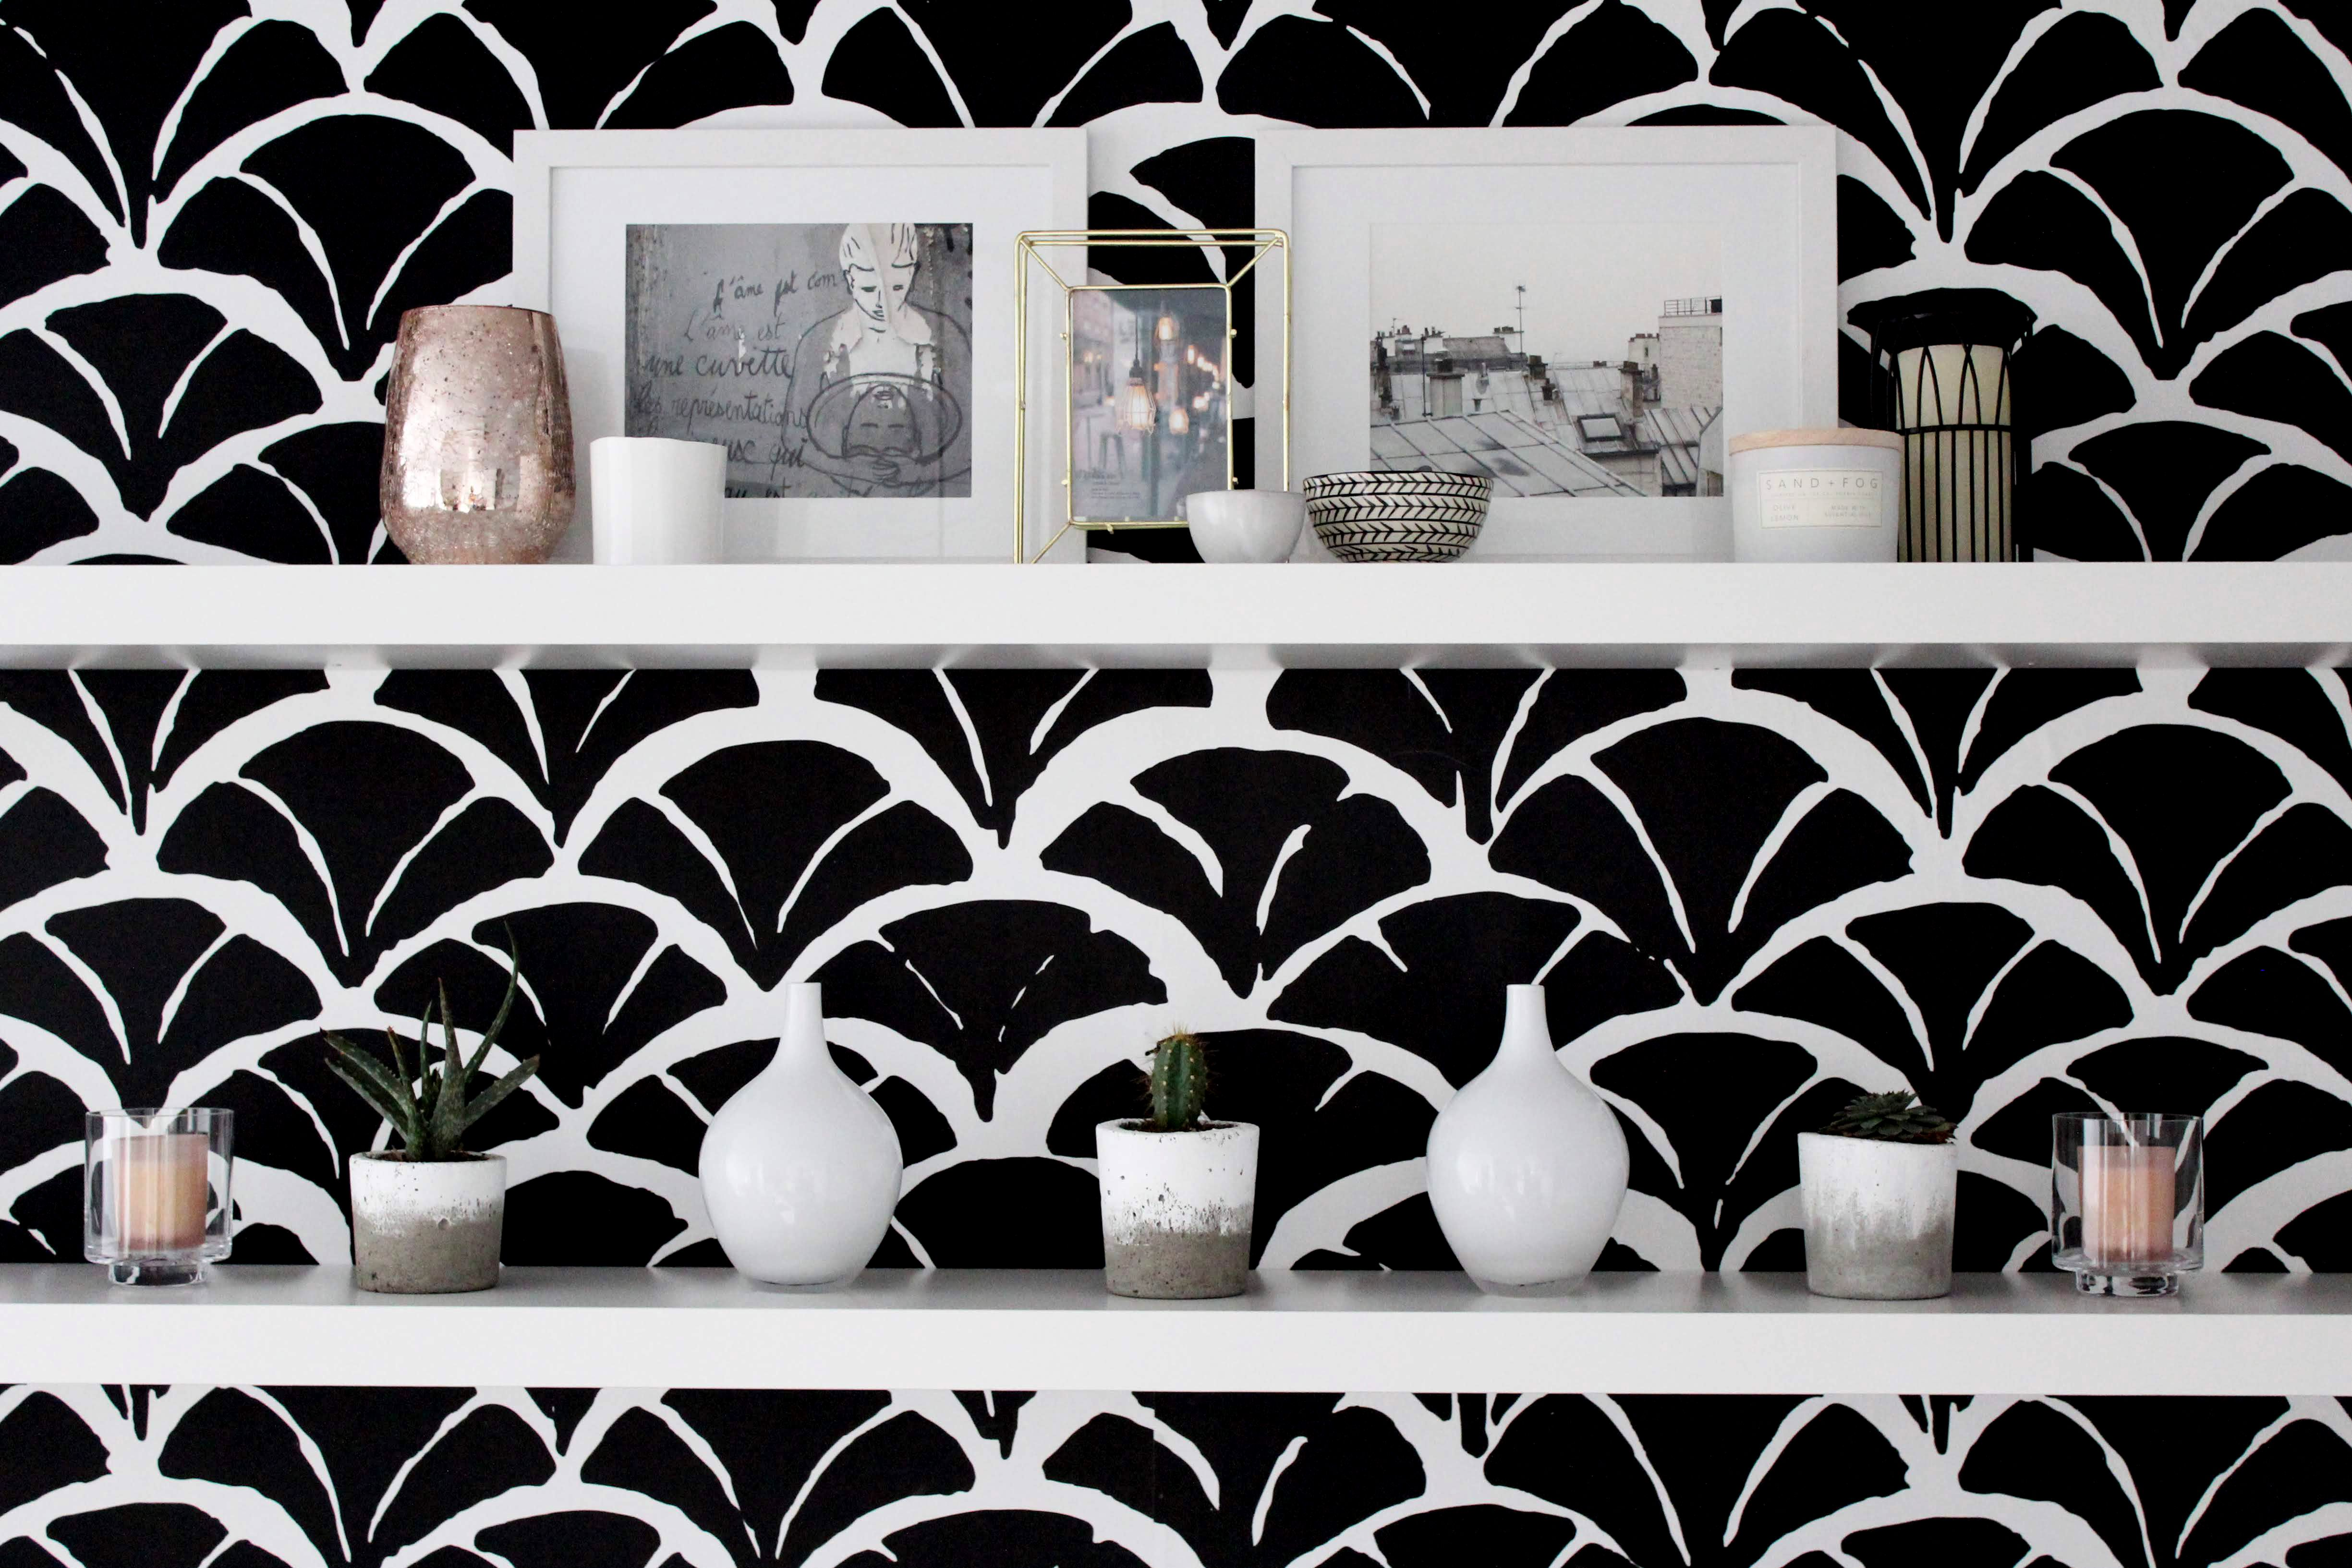 Black Calyxes Removable Wallpaper It S A Very Good Quality Matte Material Its Structure Reminds Of A Cloth Fabr Fish Scale Pattern Wall Murals Geometric Decor